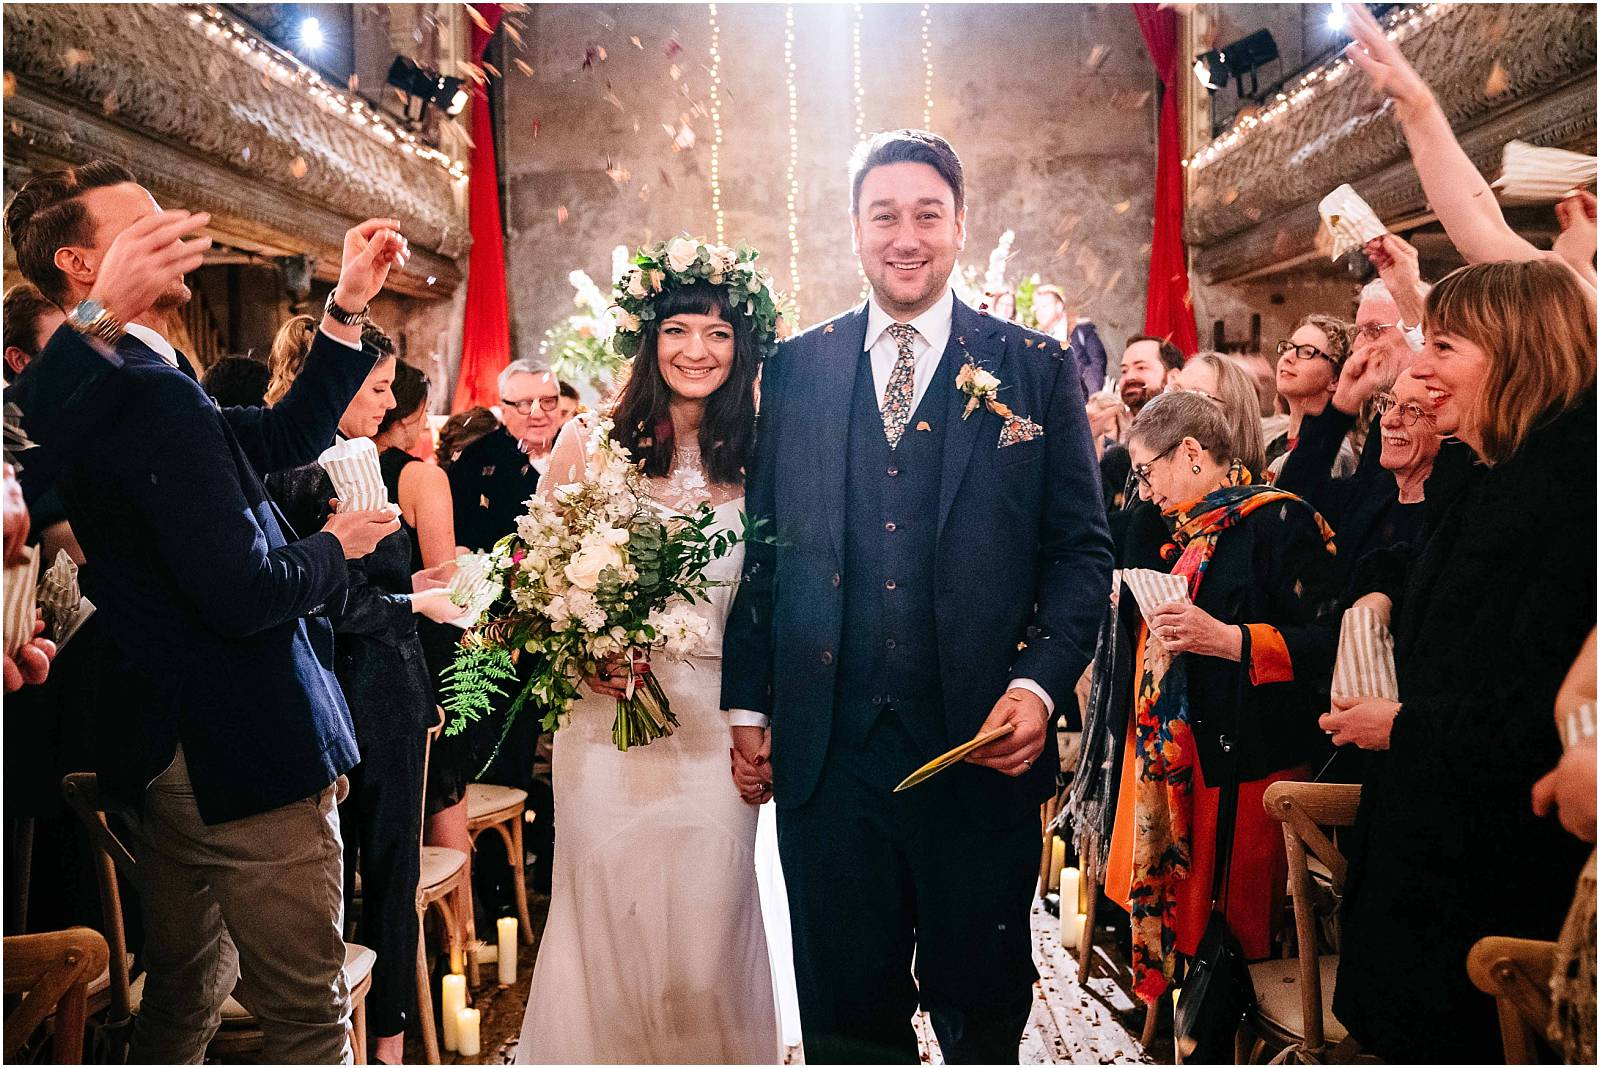 Wilton's Music Hall Wedding Photography – Bella & Stephen's Winter Wedding